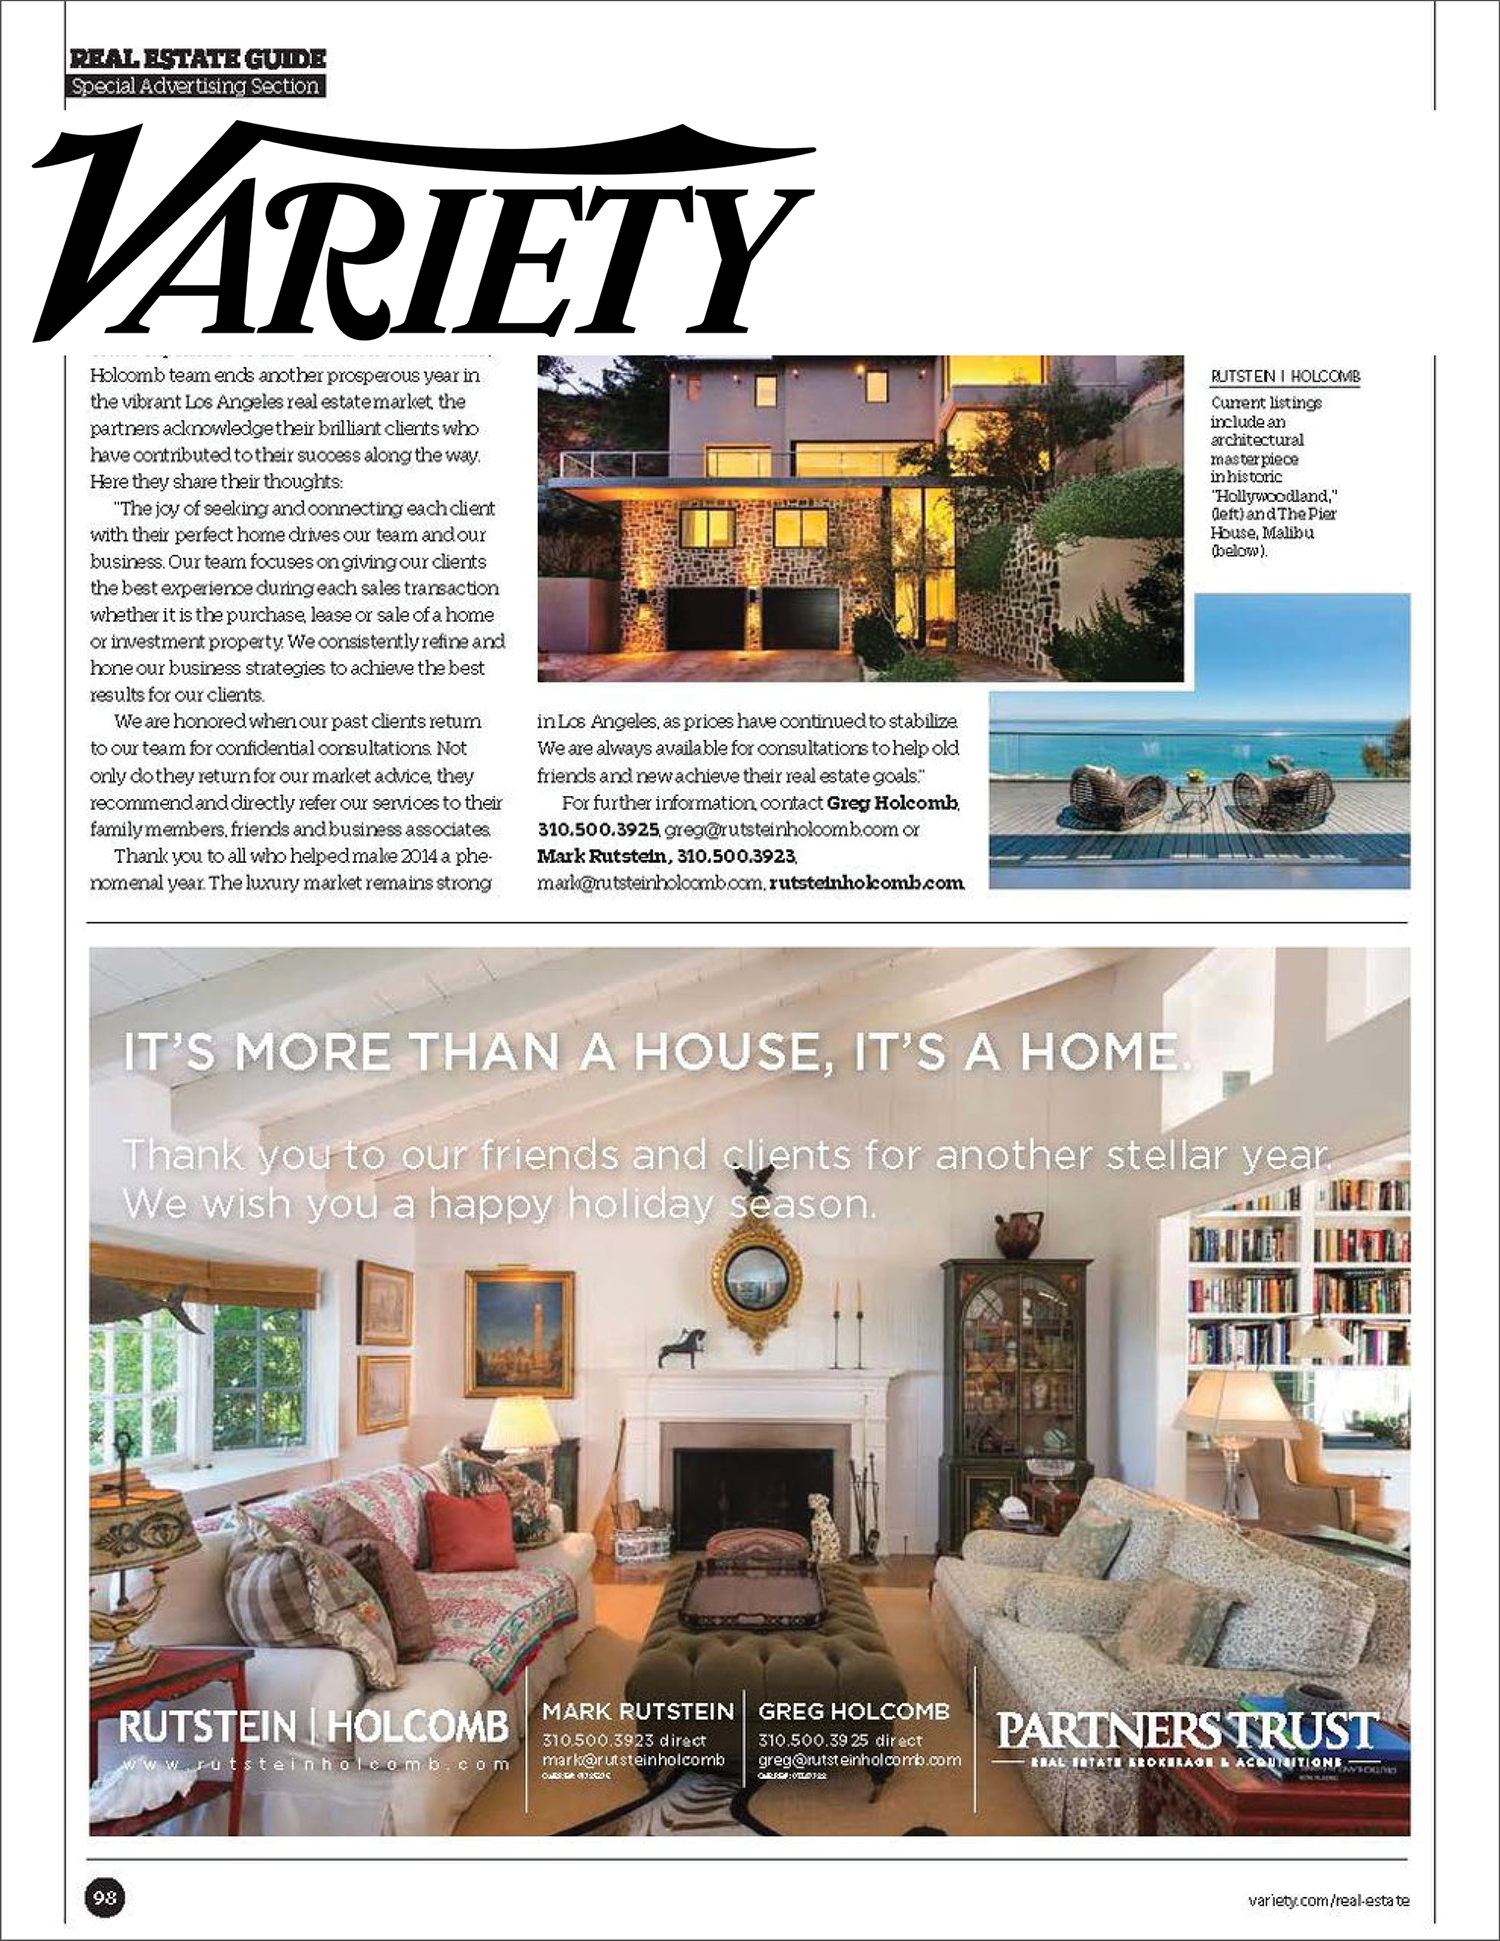 Iconic Homes_Real Estate Guide: Rutstein | Holcomb's Year in Review